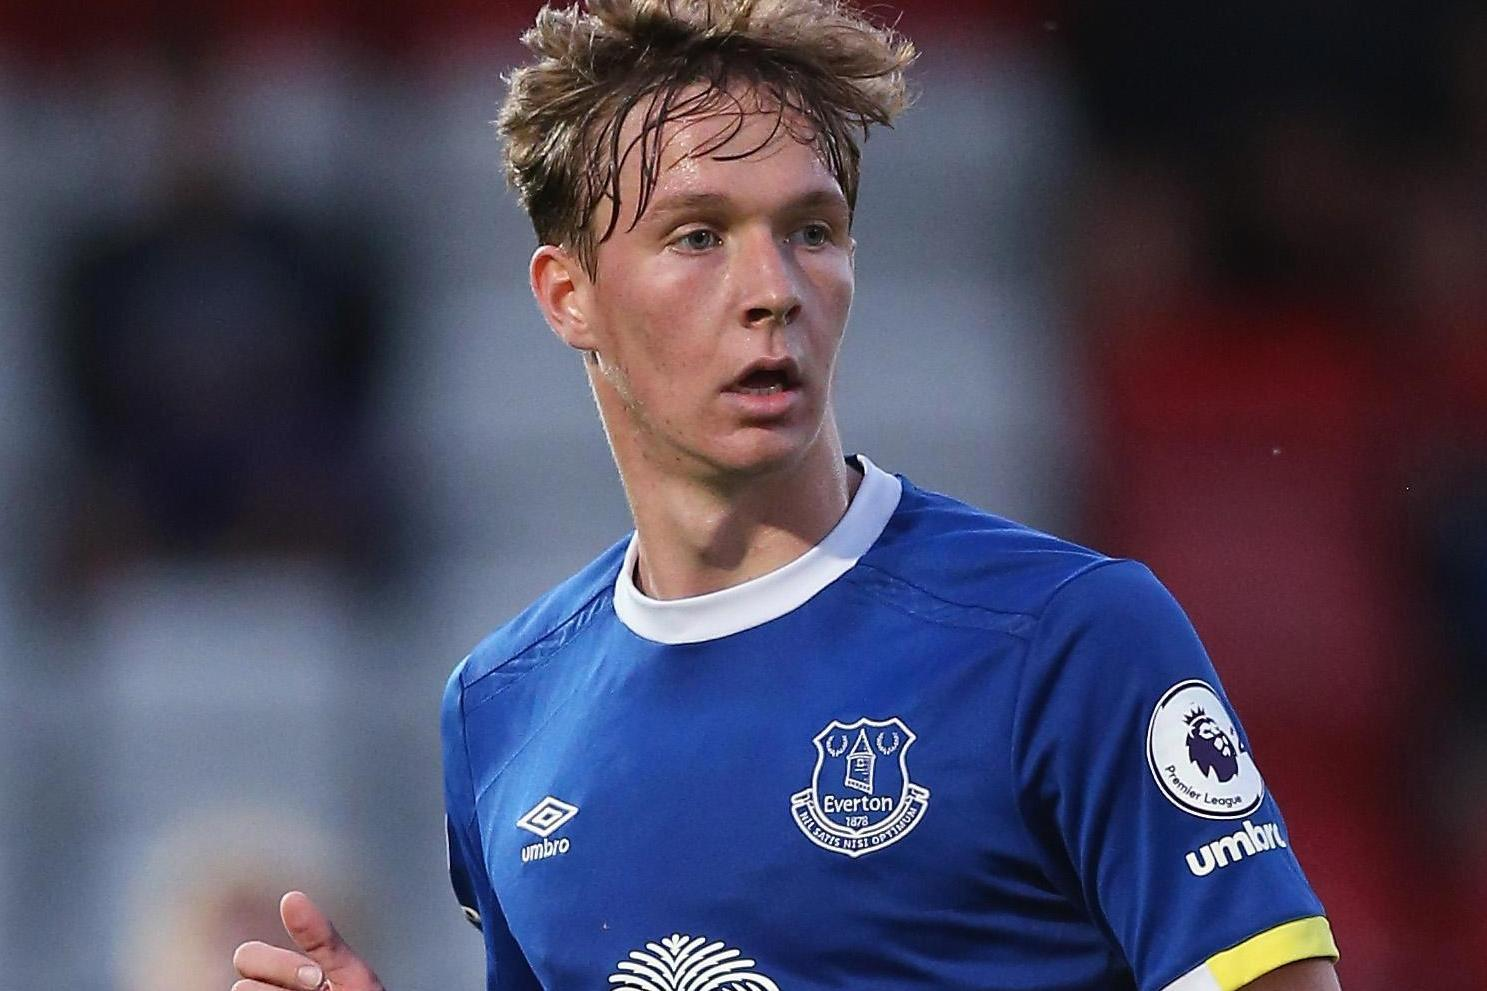 Rangers news: Steven Gerrard is considering a loan move for Everton's England U21 star Kieran Dowell